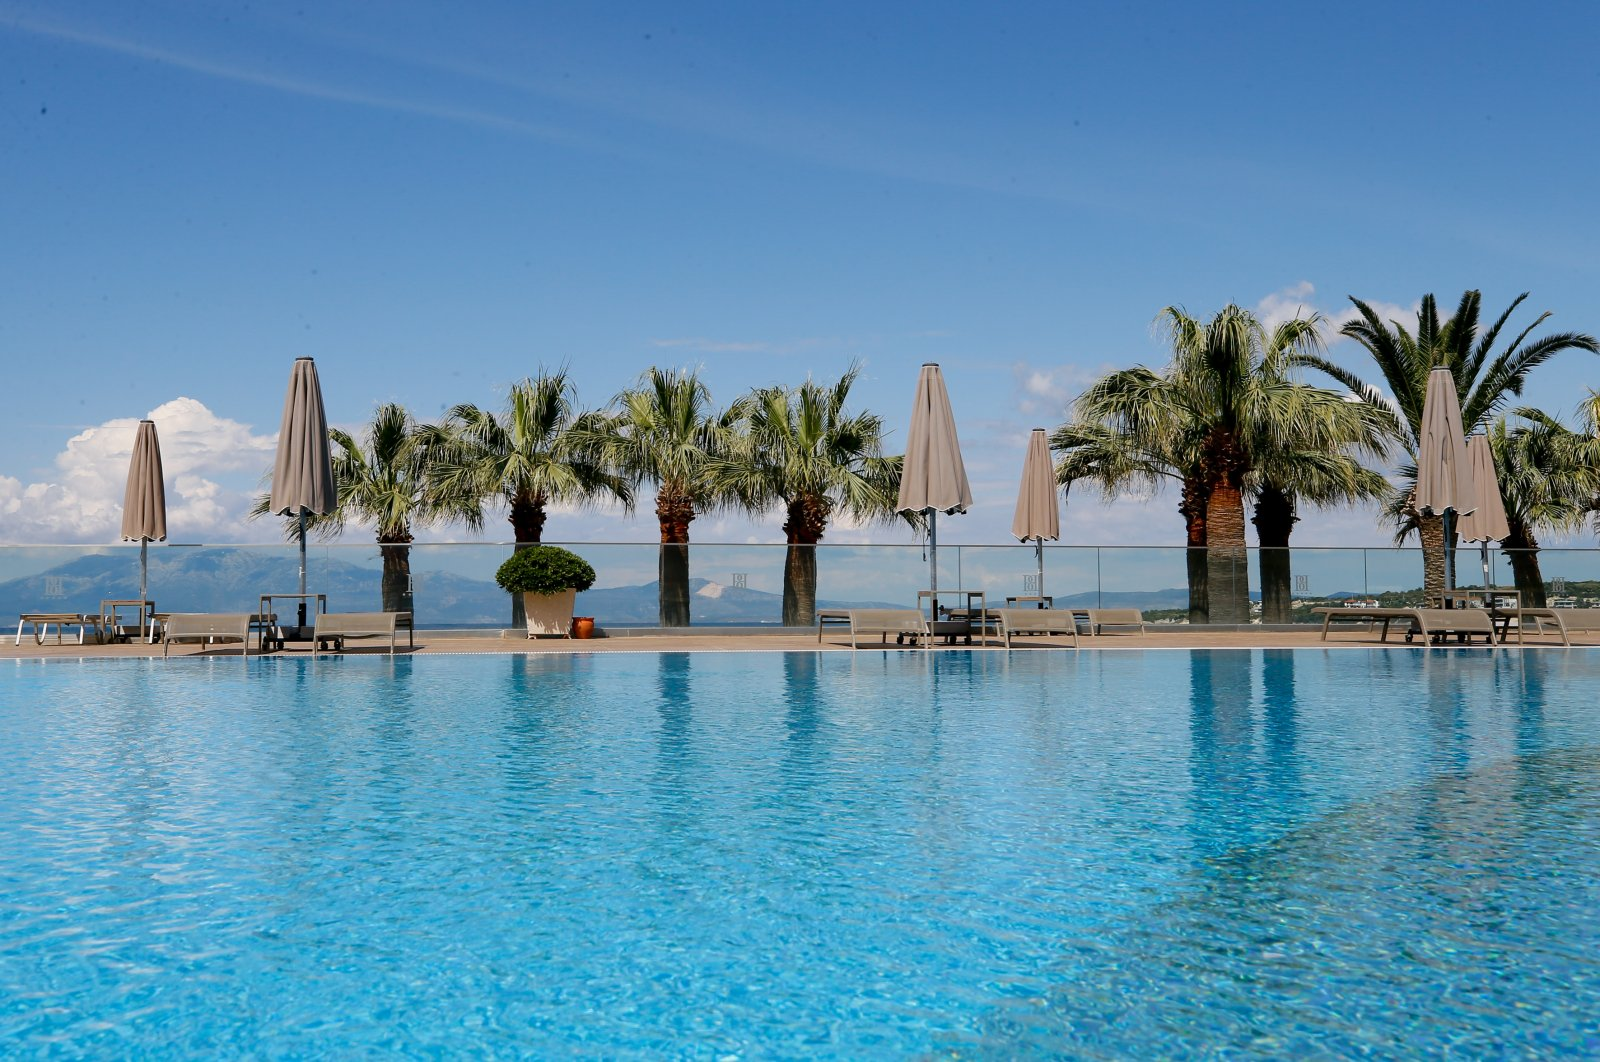 Turkey's leading tourism destinations Çeşme, Kuşadası and Didim in the Aegean await visitors with COVID-19 measures implemented in beaches, hotels and historical sites. (AA Photo)